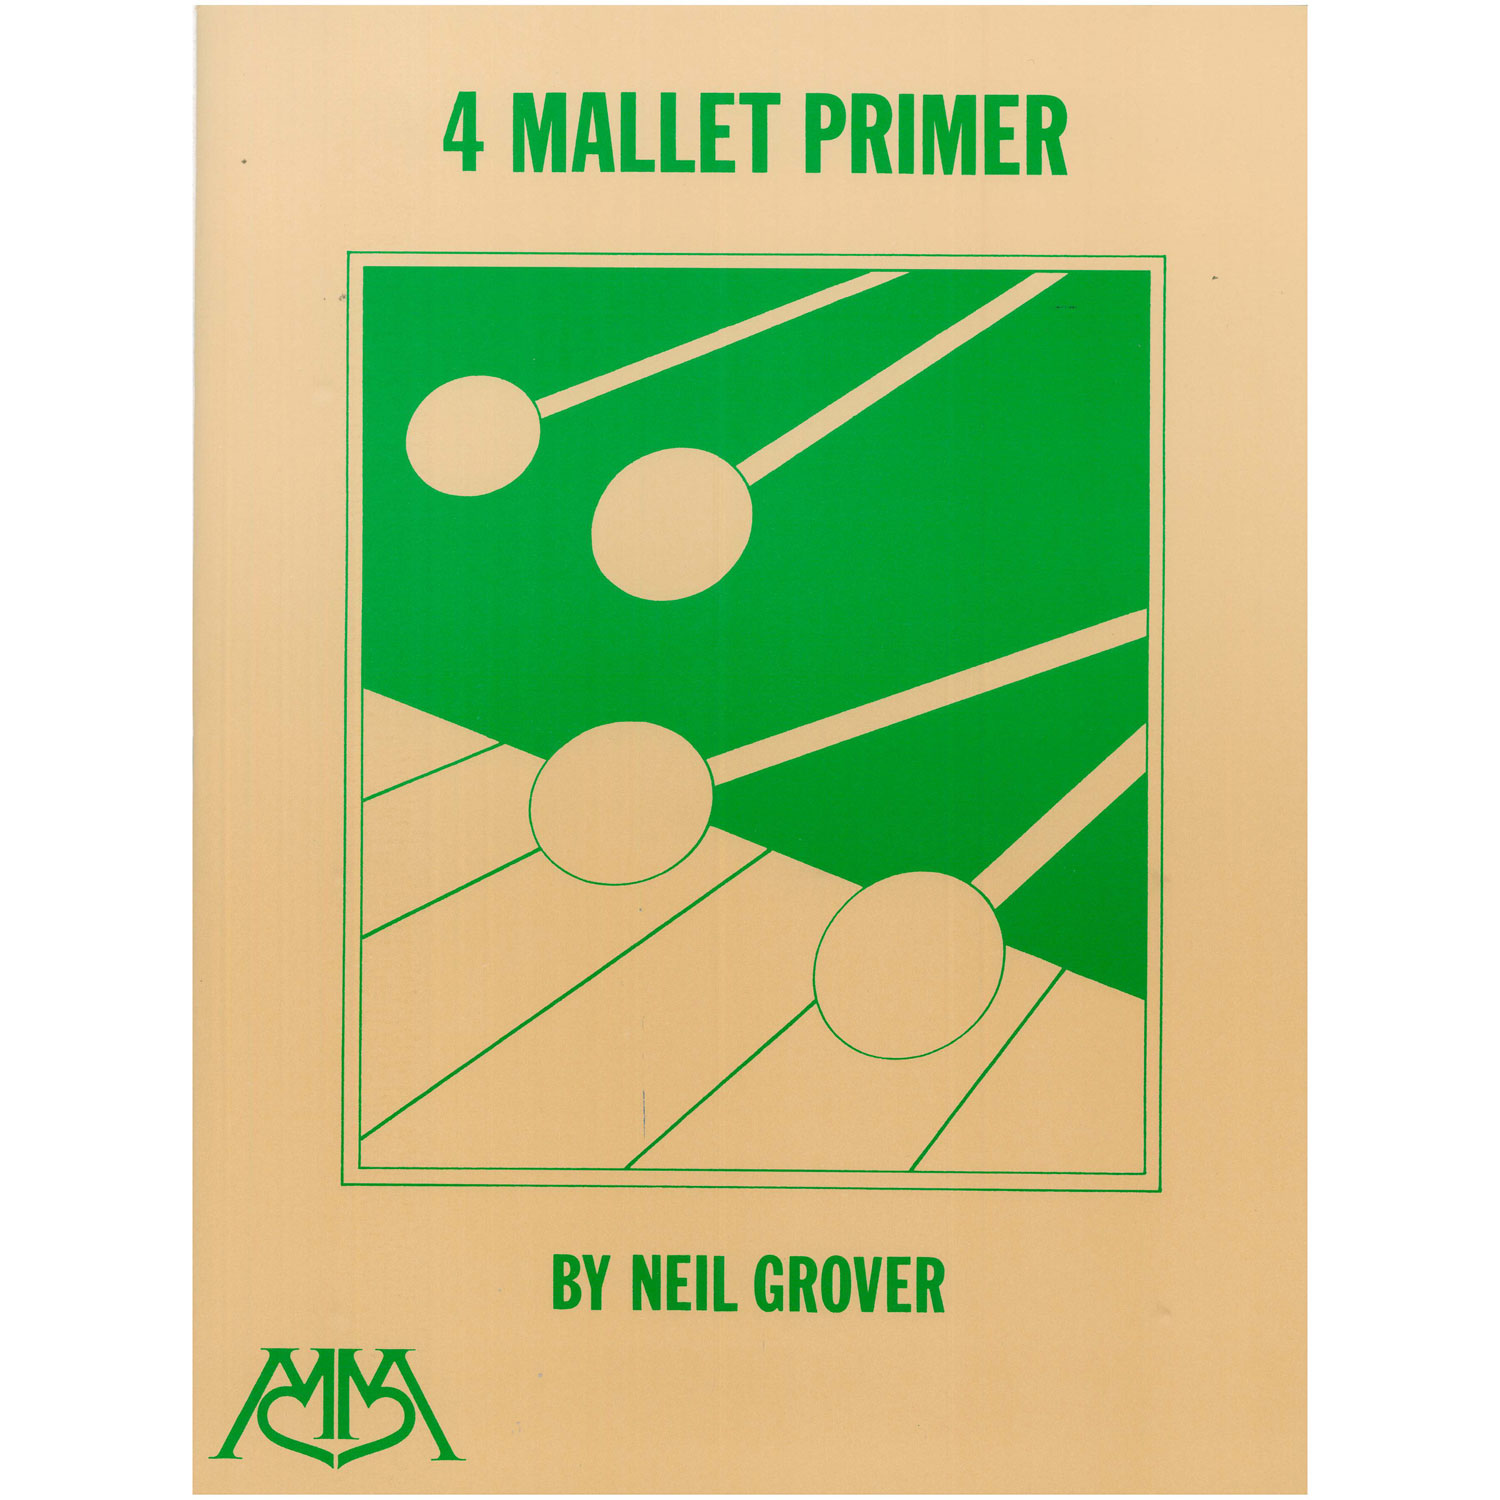 4 Mallet Primer by Neil Grover